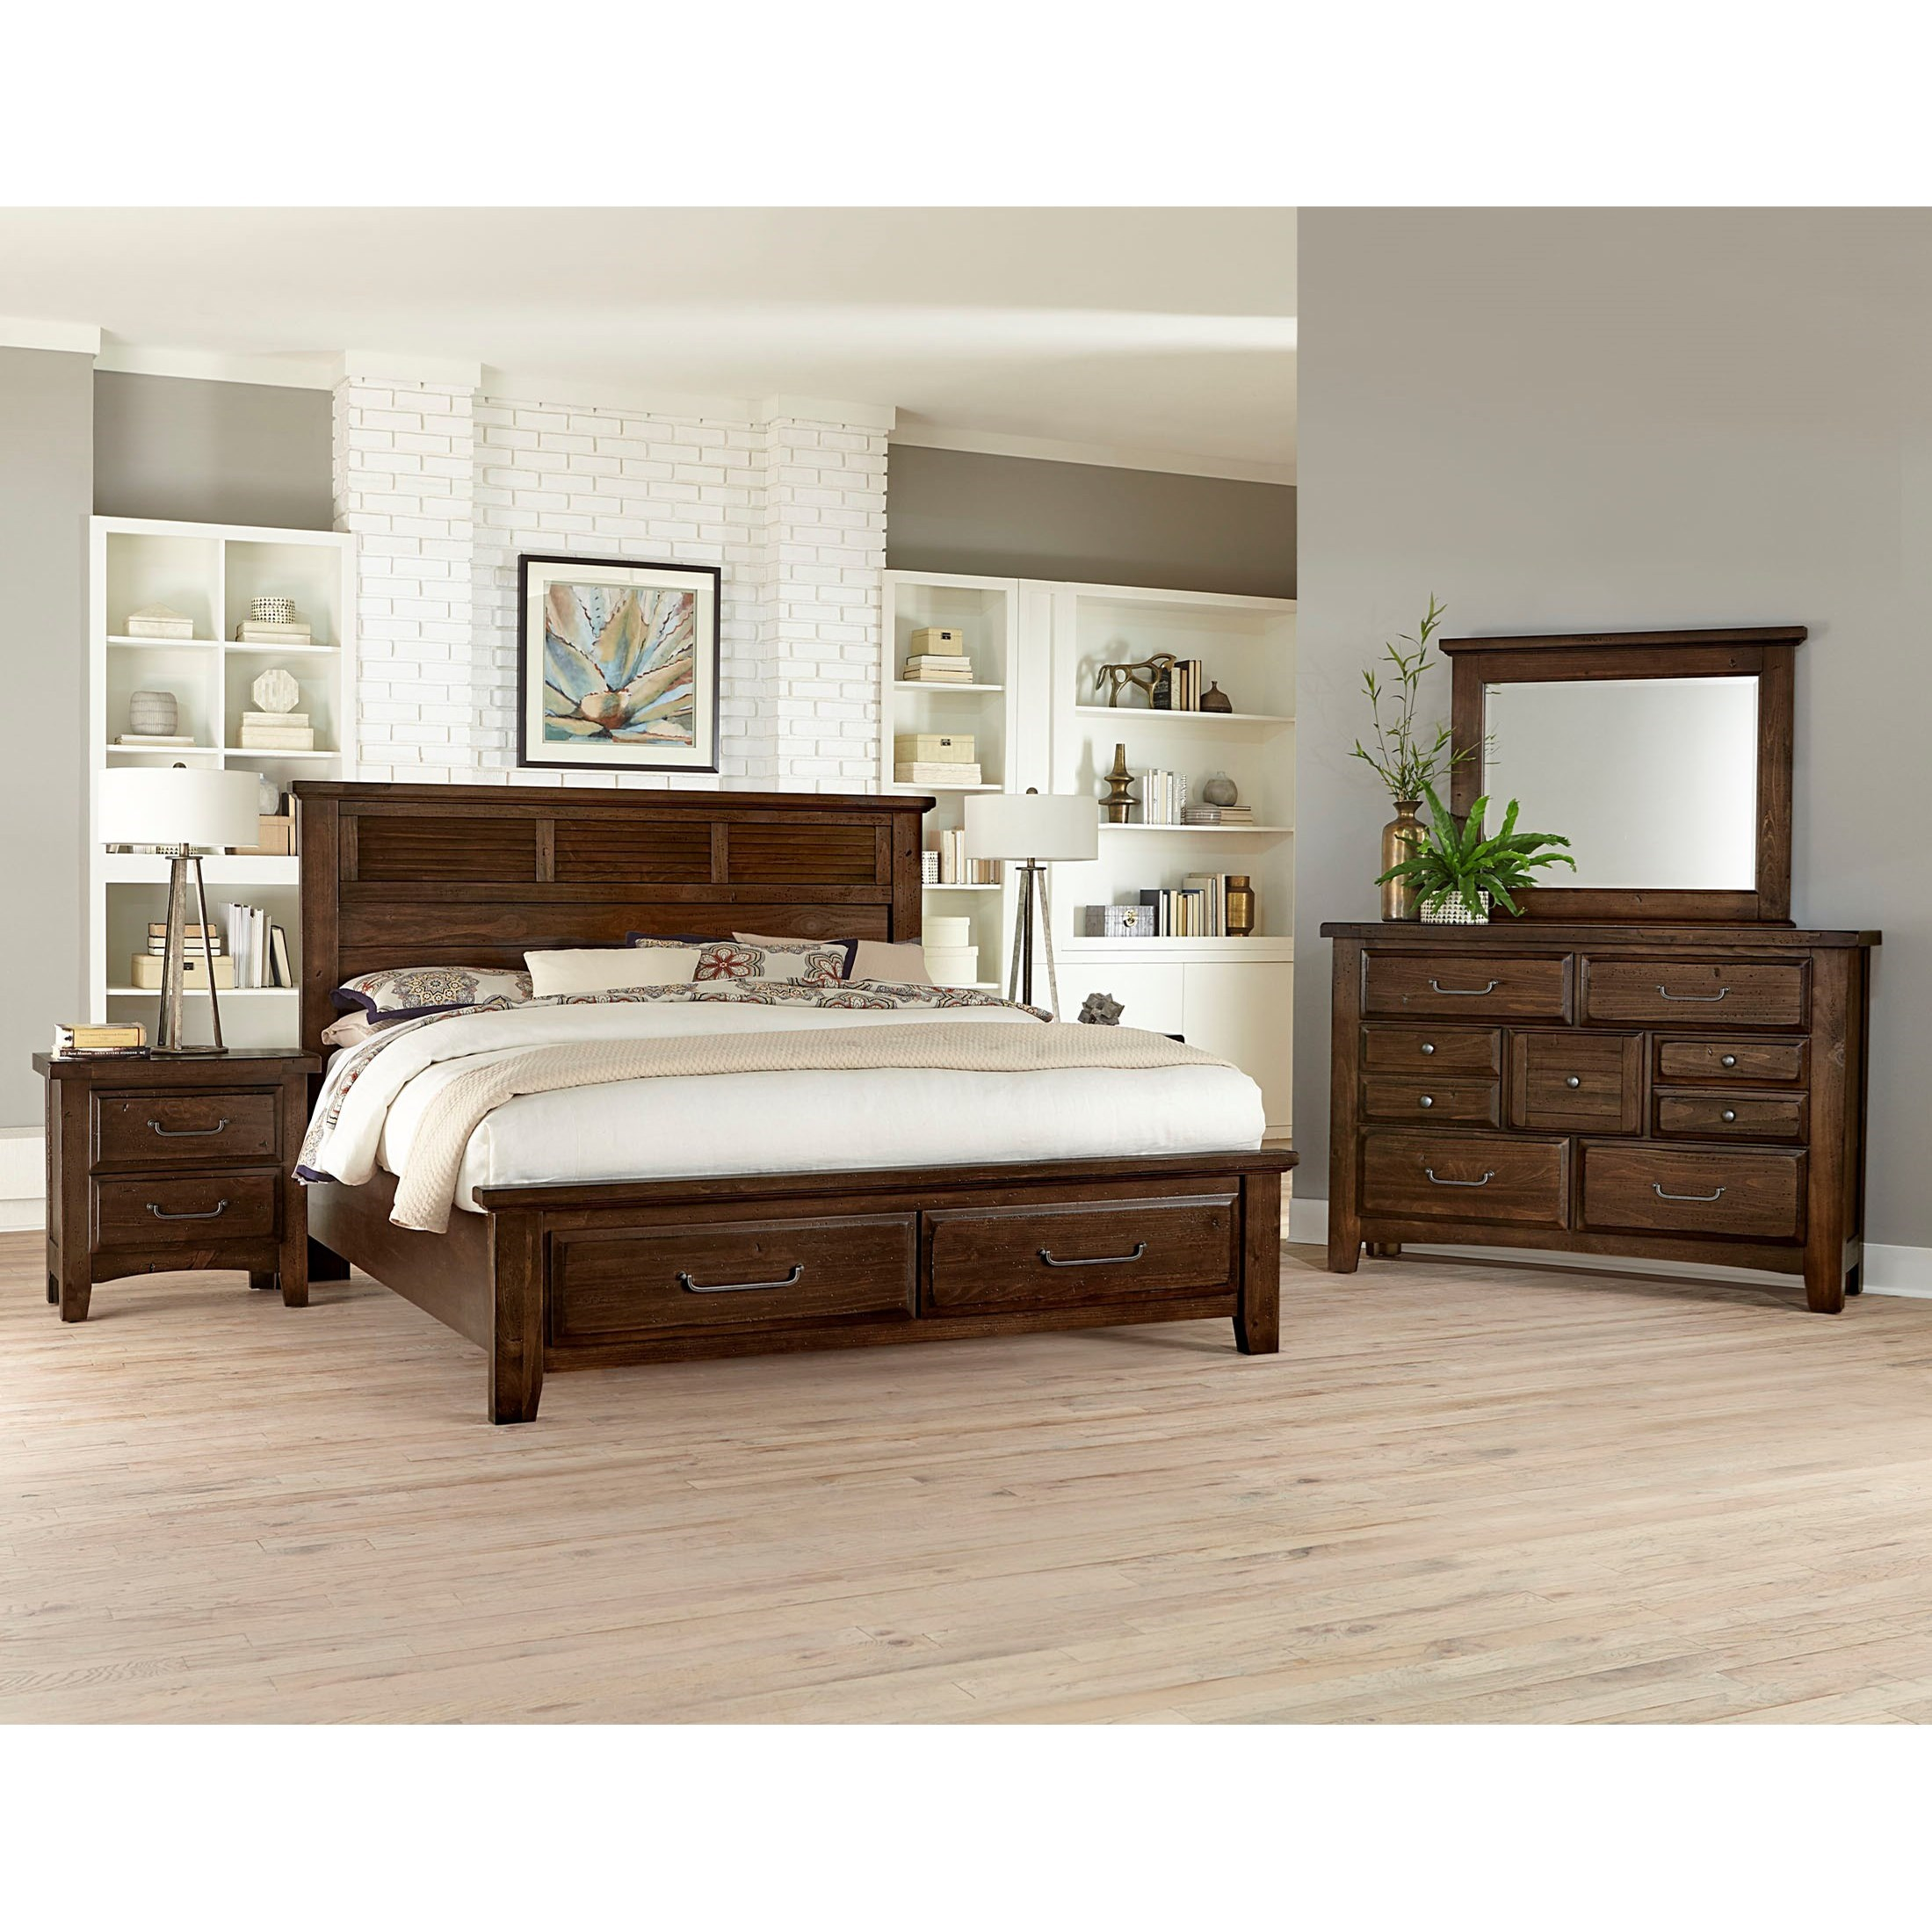 Vaughan Bassett Sawmill Queen Bedroom Group